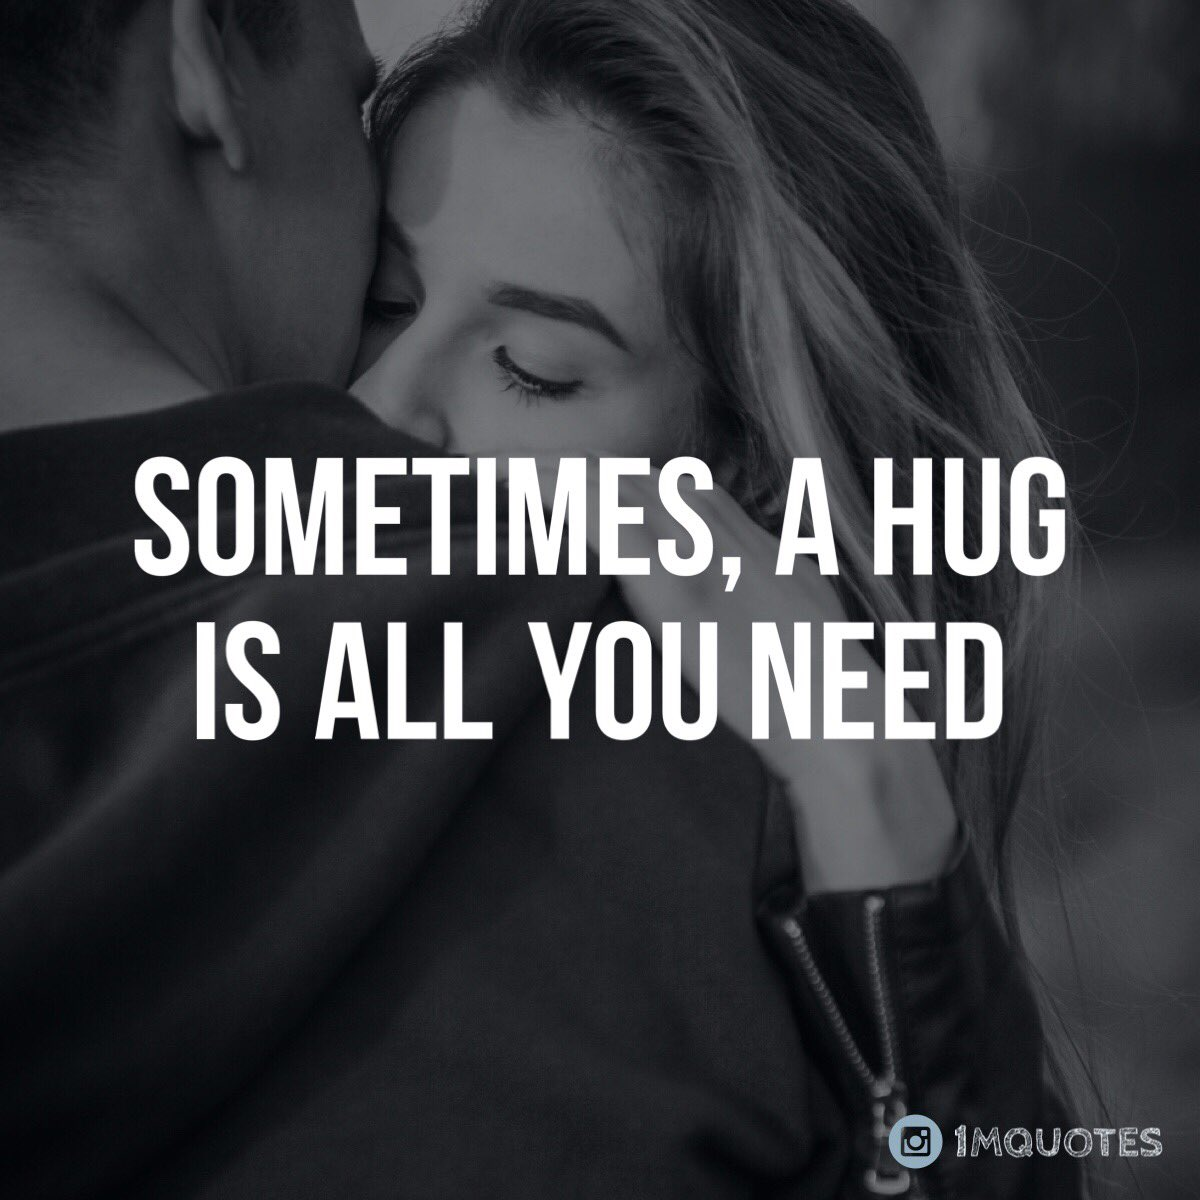 Quotes On Twitter Sometimes A Hug Is All You Need Hug Love